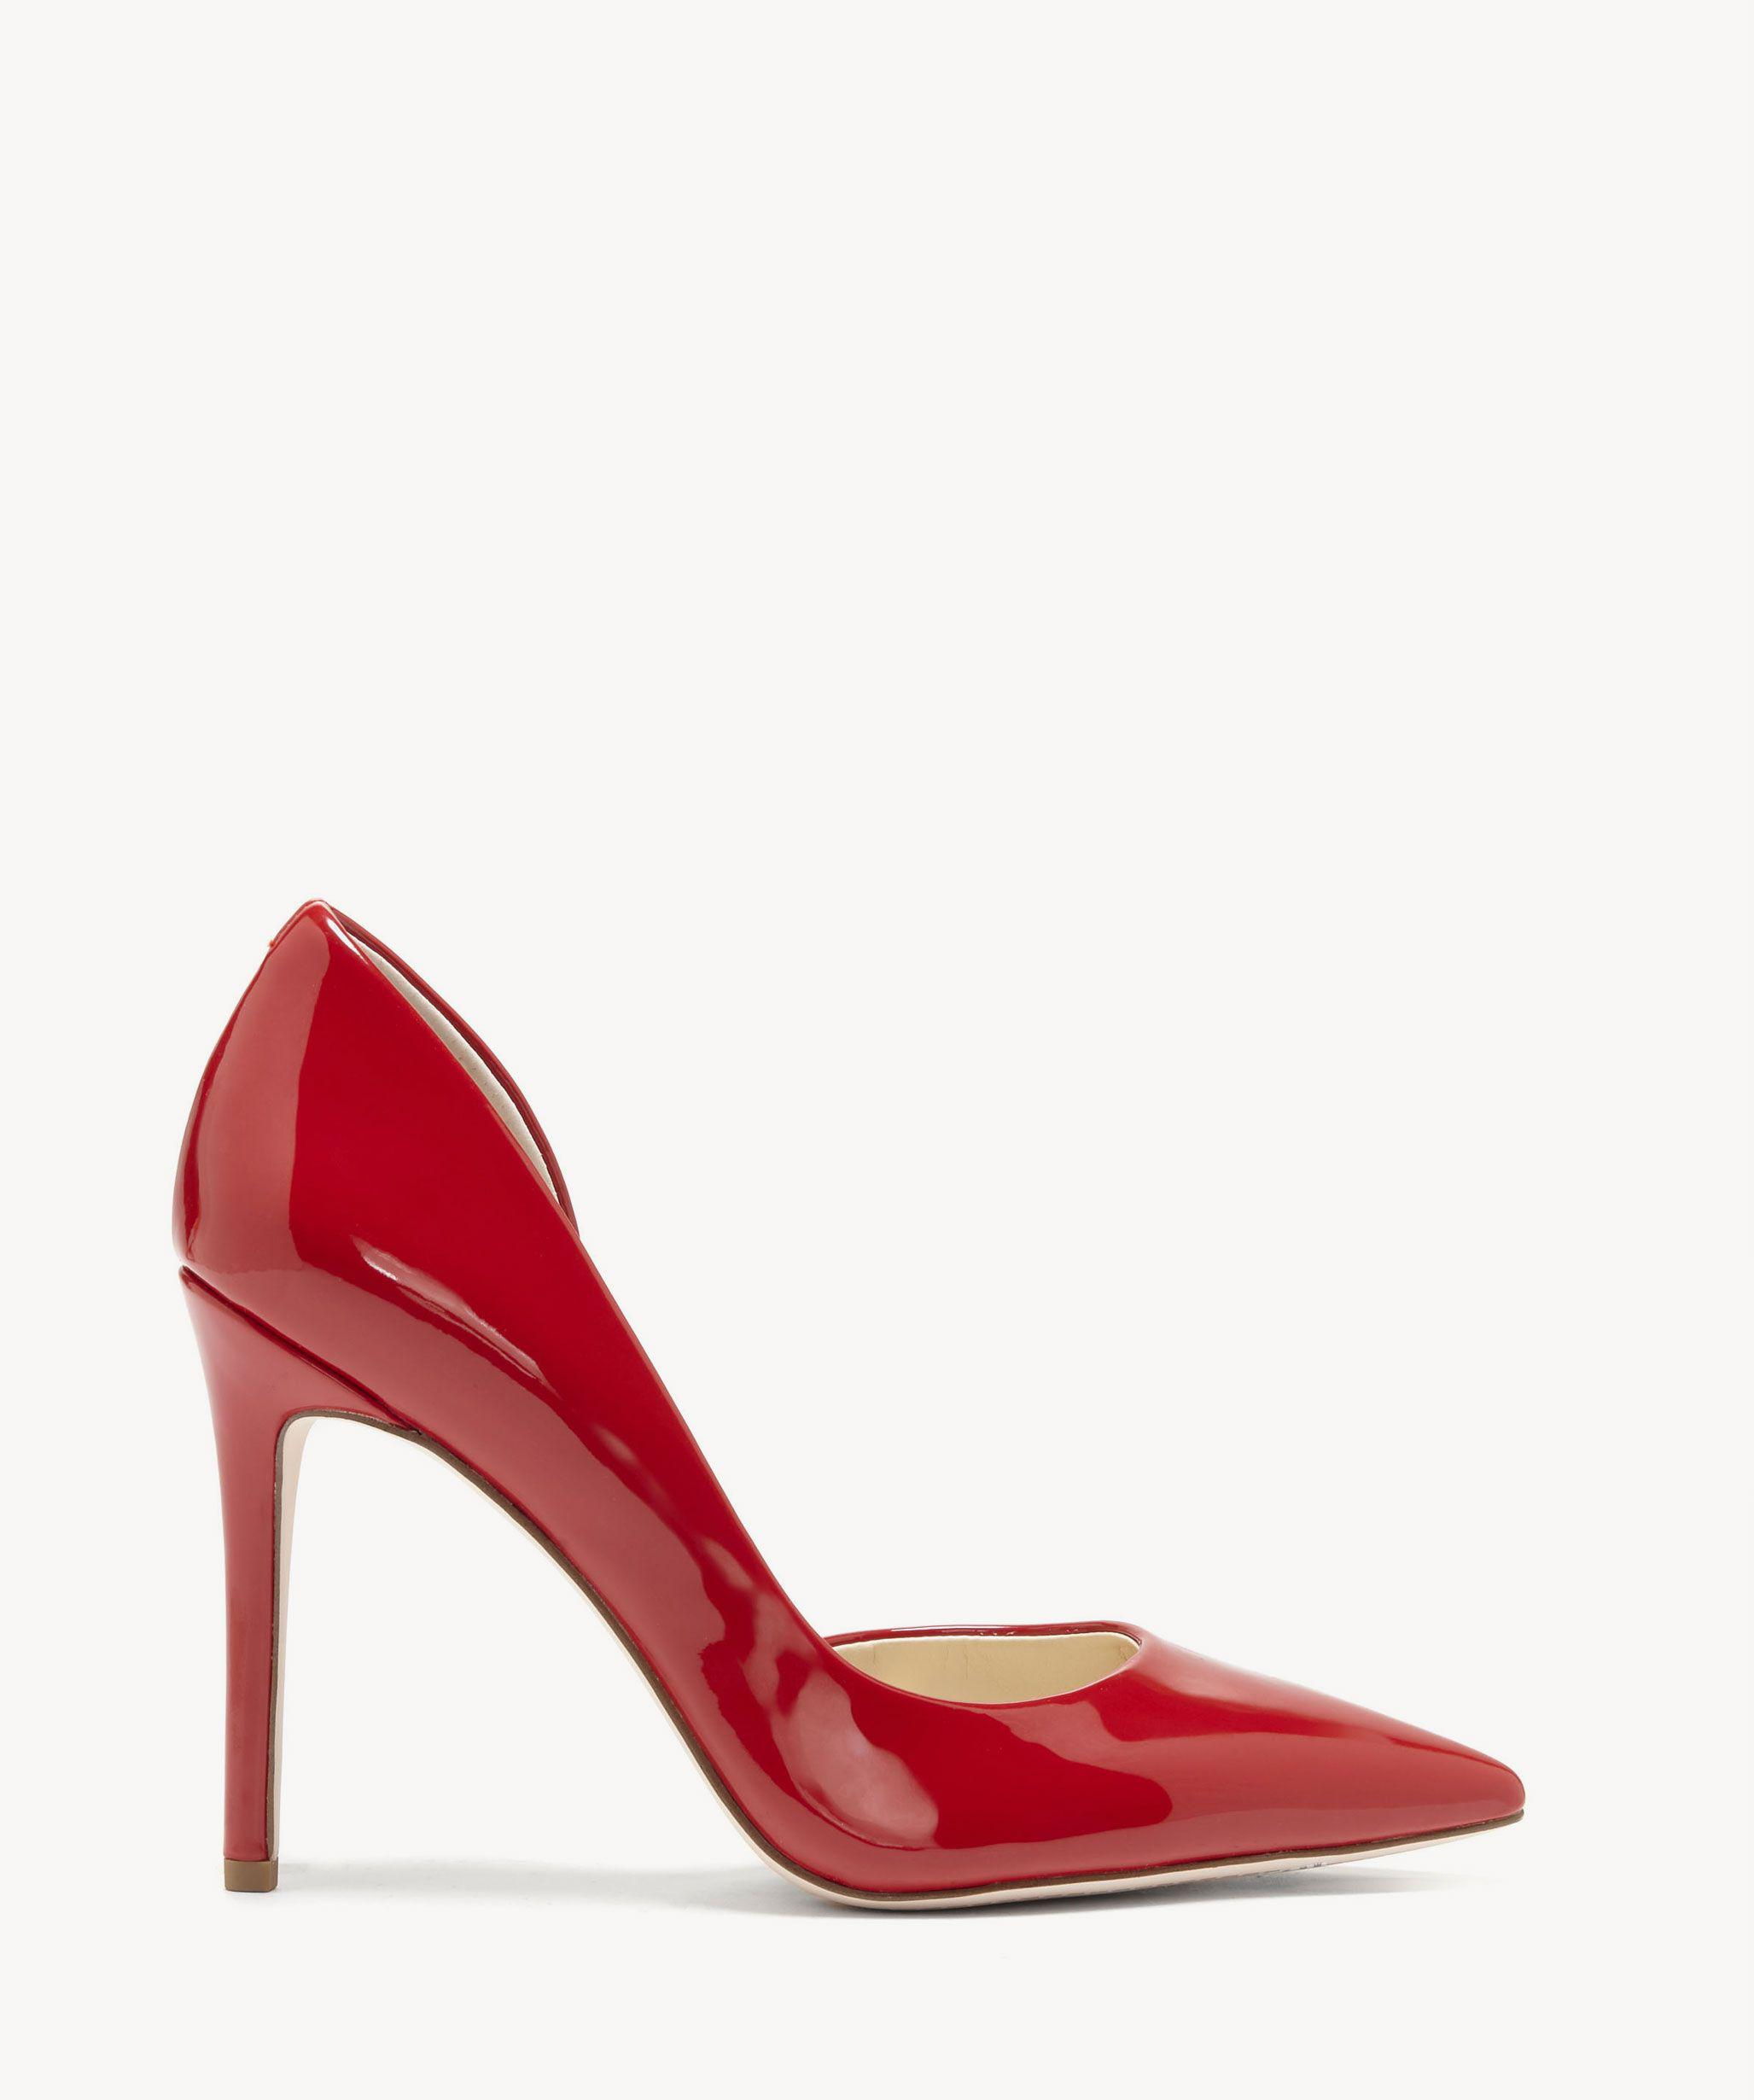 8af9247c7190 Lyst - Jessica Simpson Pheona in Red